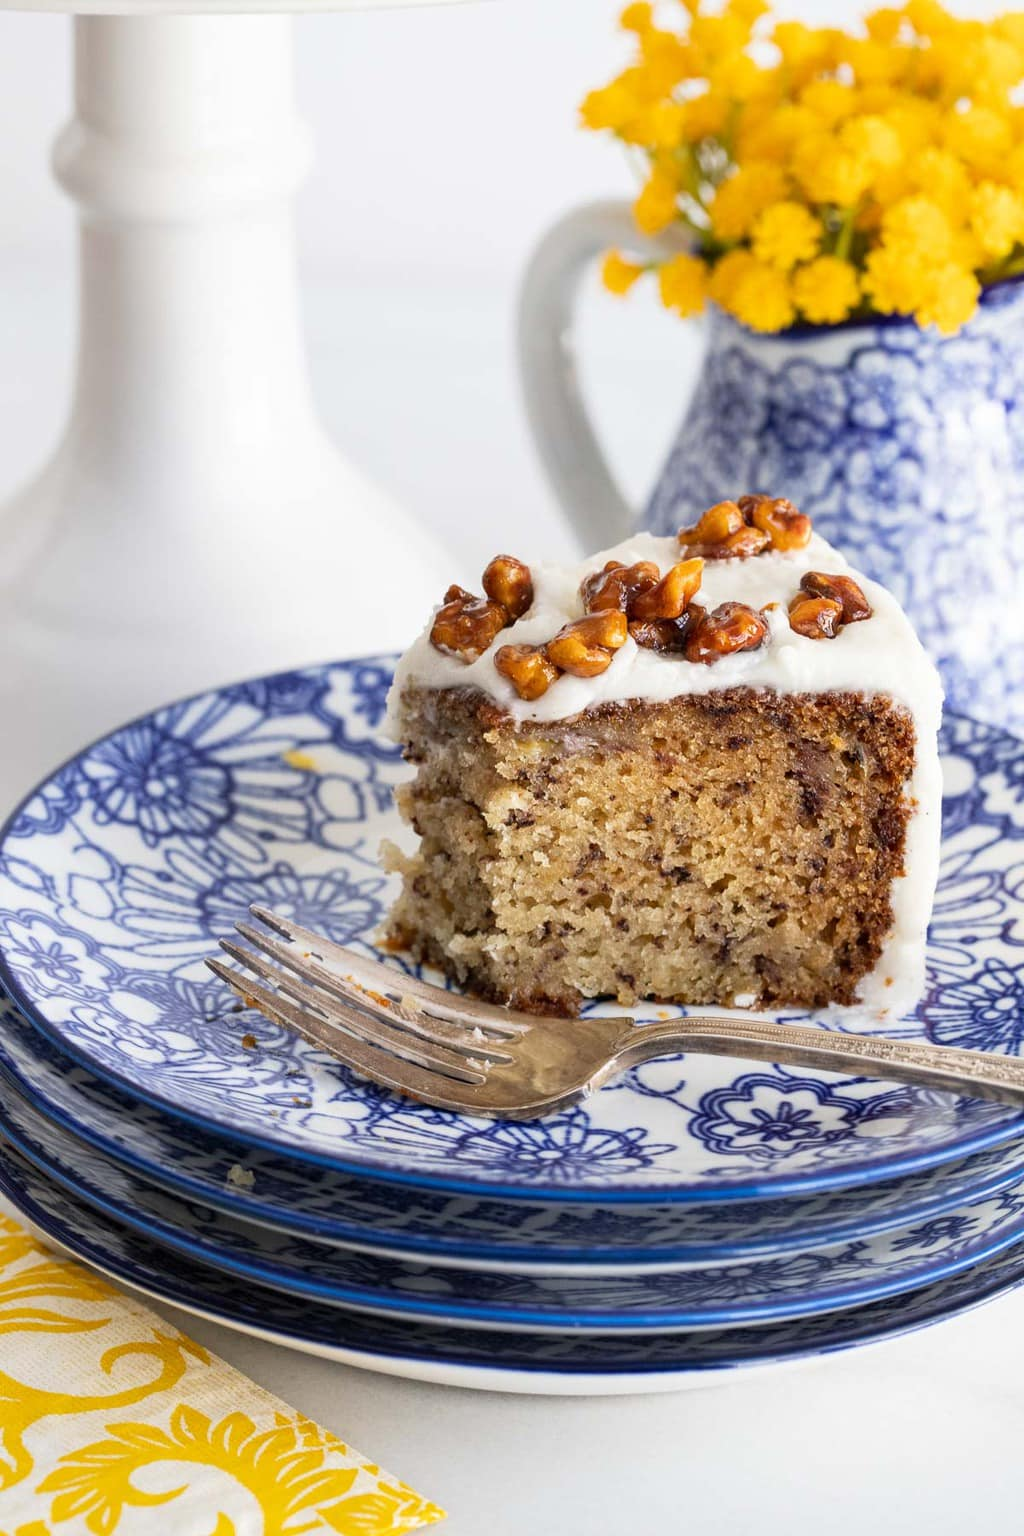 Photo of part of a slice of One-Bowl No-Mixer Banana Cake on a blue and white patterned serving plate.